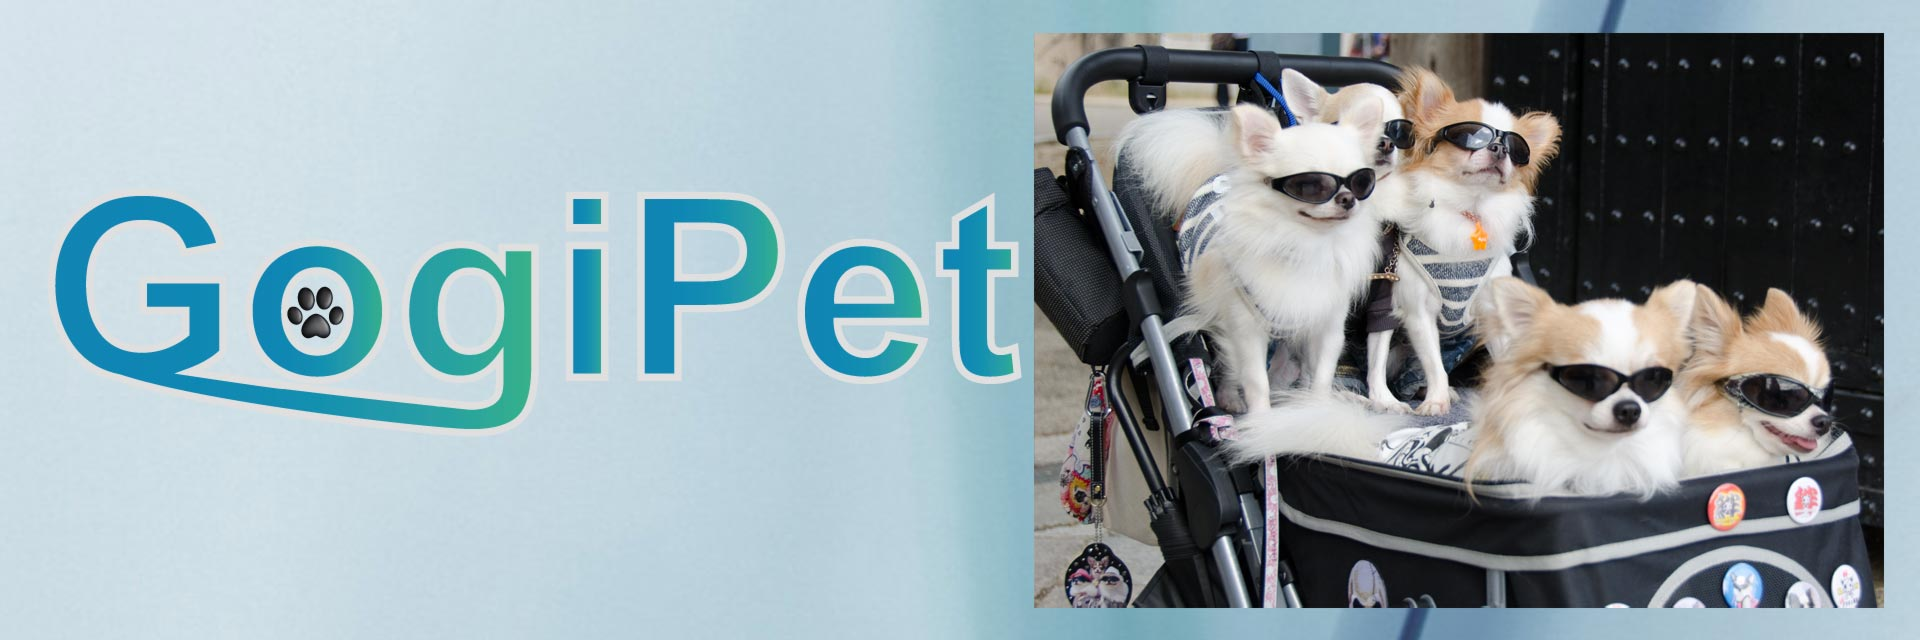 Prams for dogs